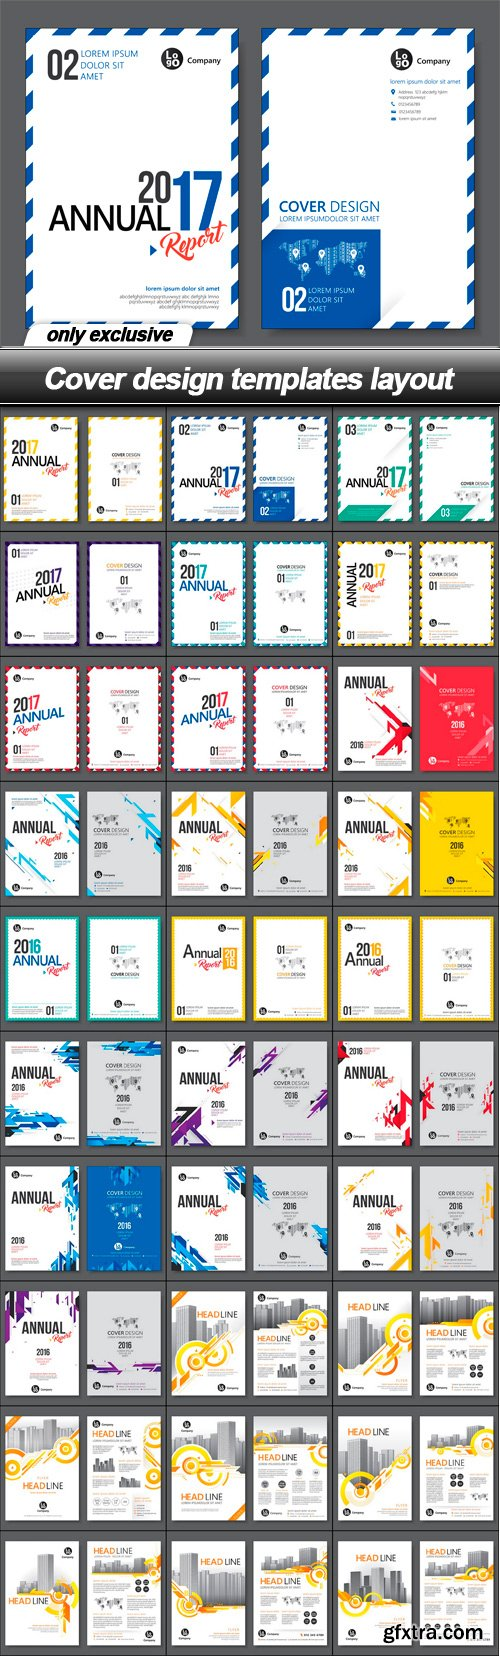 Cover design templates layout - 30 EPS